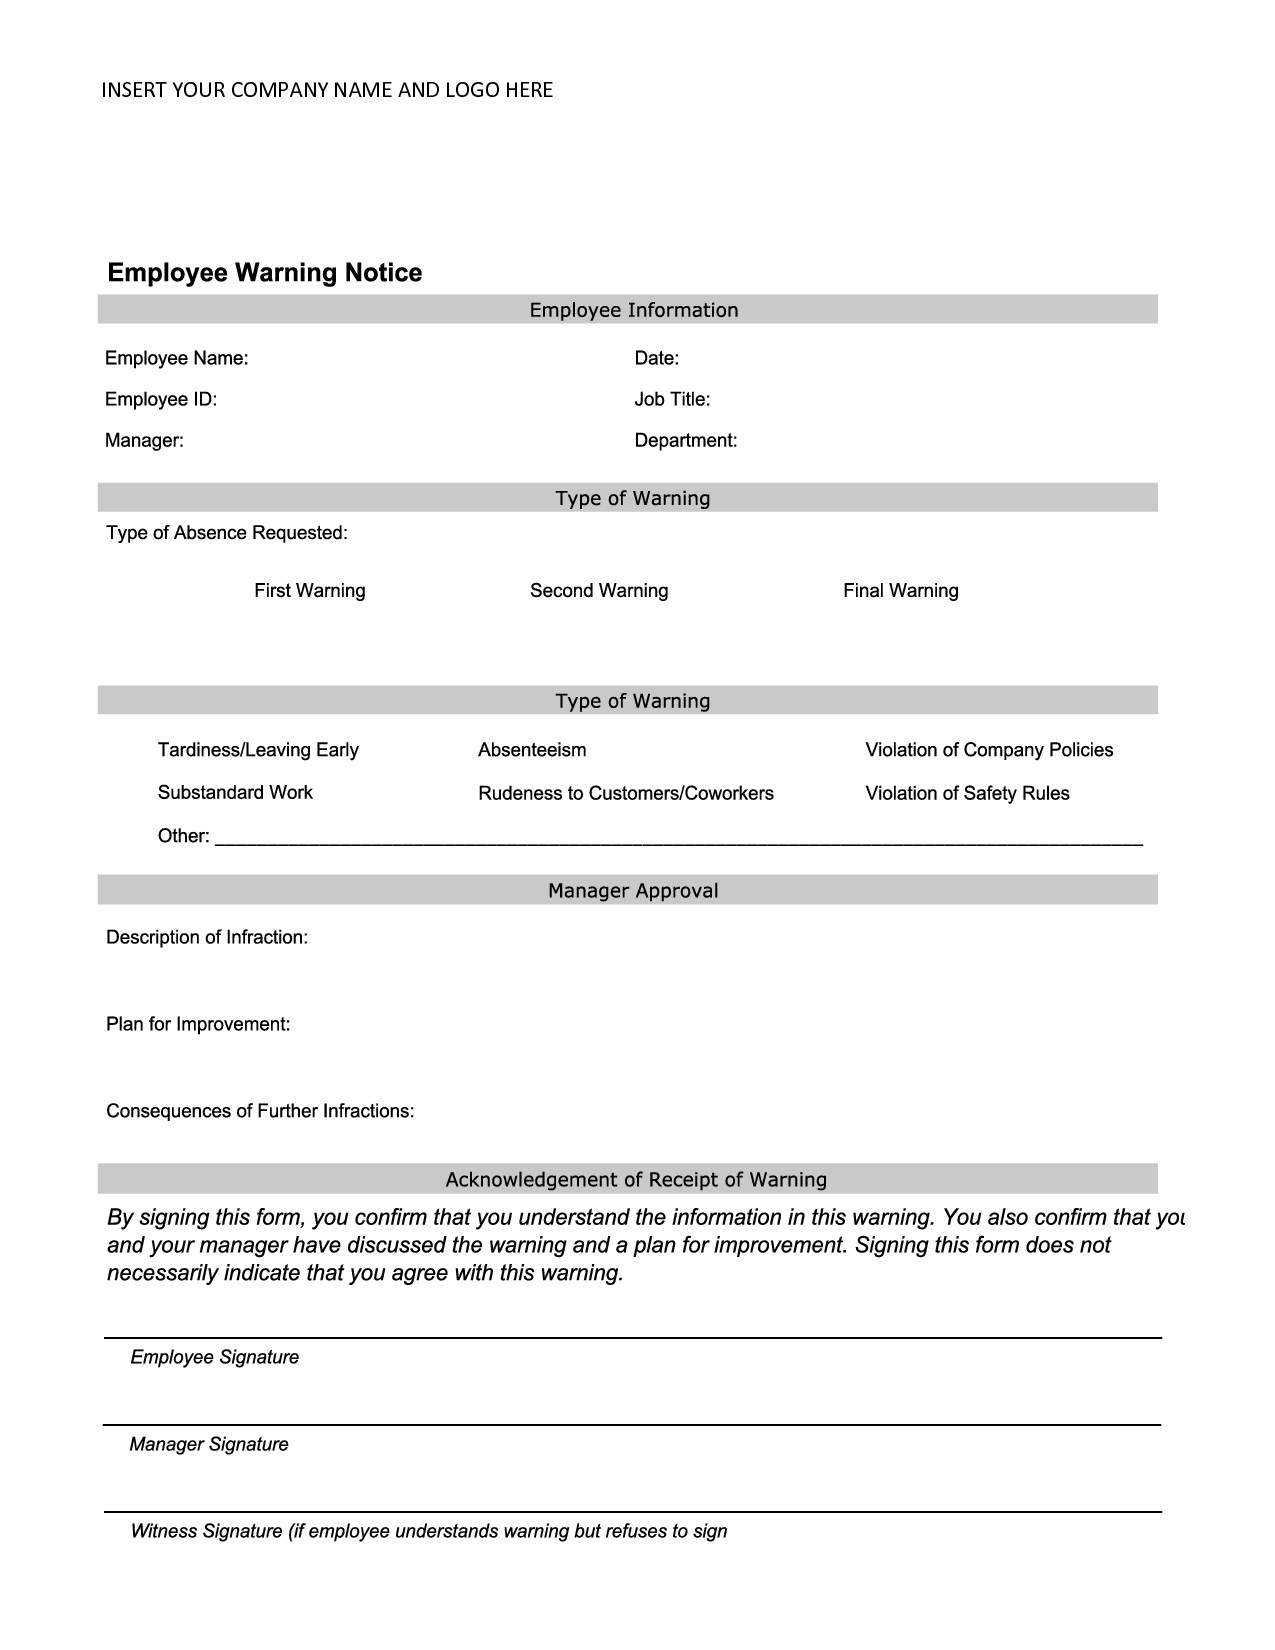 Employee Written Warning Template Employee Warning Notice Employee forms